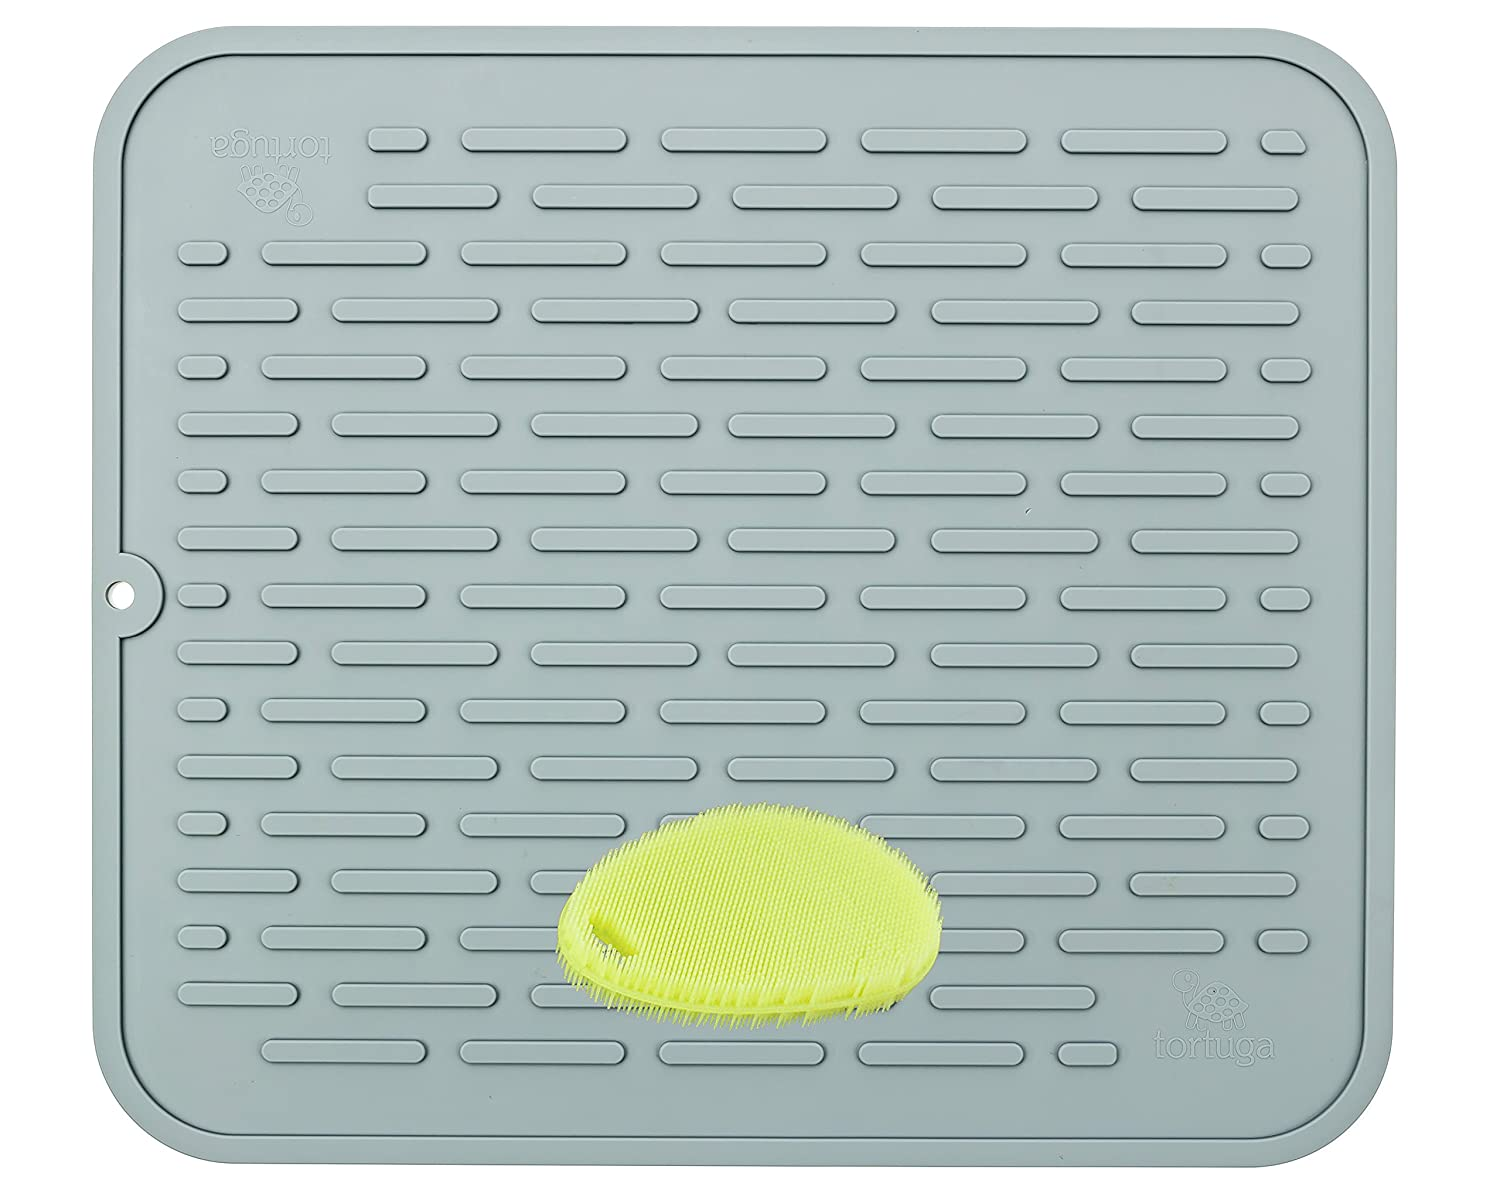 XL Premium Silicone Dish Drying Mat & Counter Protector with BONUS Scrubby |Hygienic, Antibacterial |Stable Wide Ridges | Easy To Wipe Clean & Dishwasher Safe |Heat Resistant 450º 17.8 x 15.8''